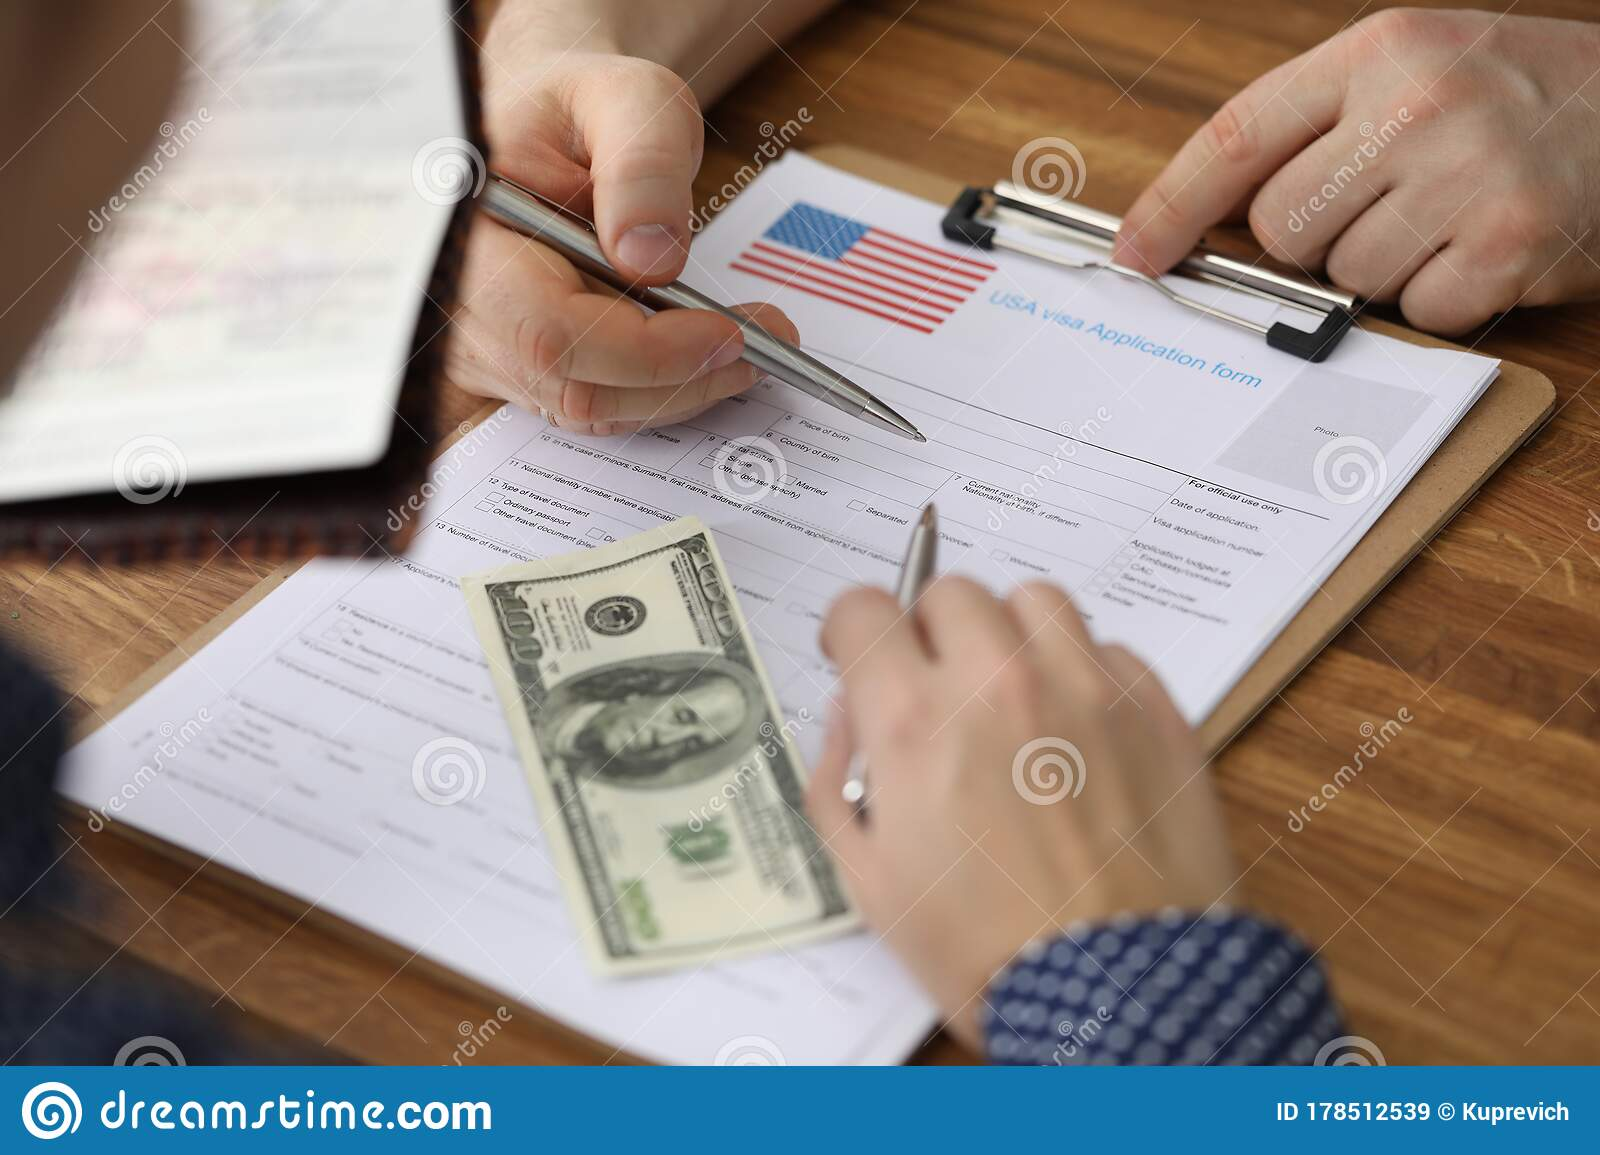 Dollars And Passport Are Visa Application Form Usa Stock Image Image Of Embassy Form 178512539